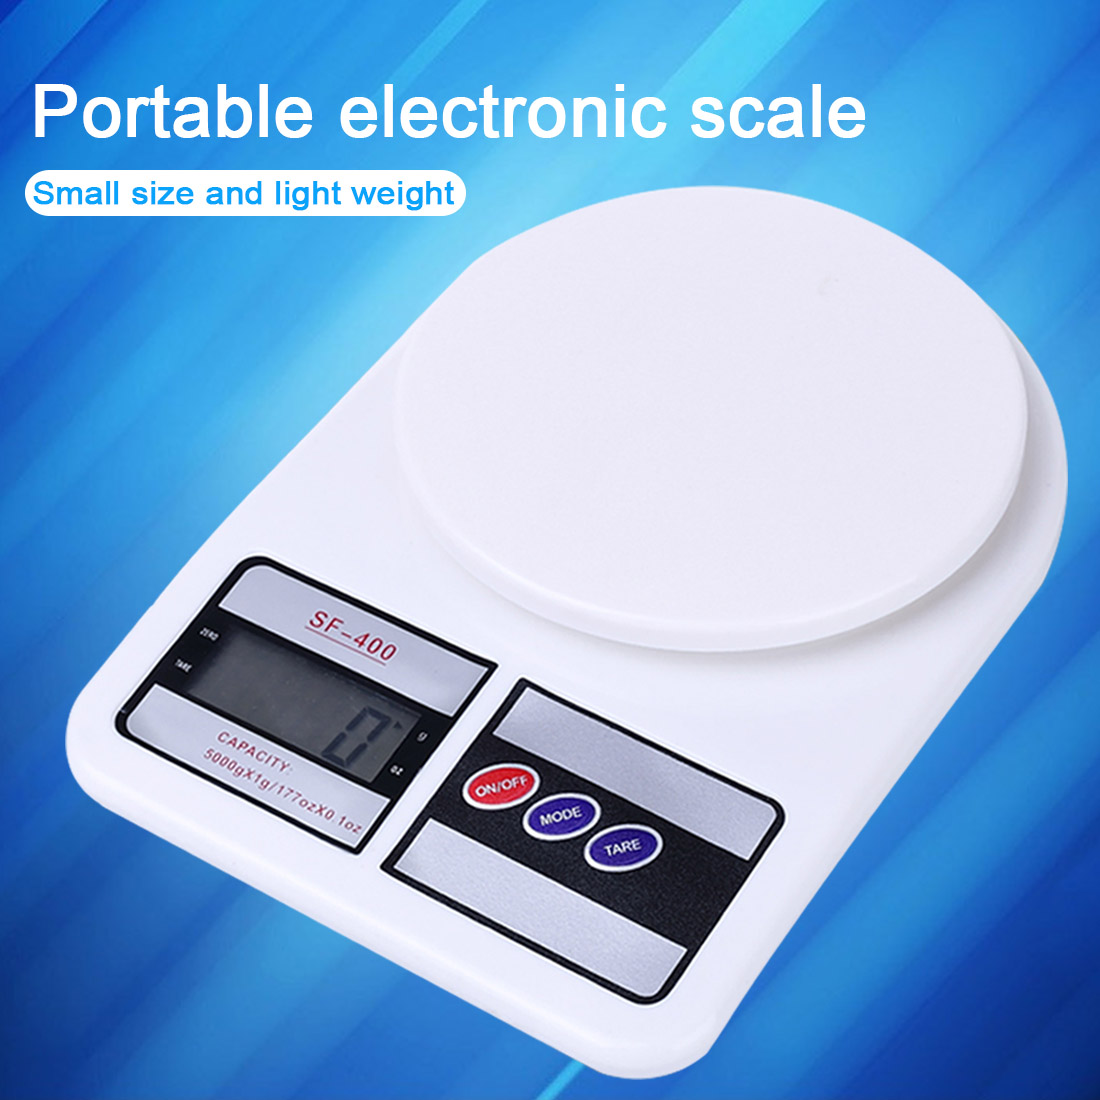 Precise Home Electronic Scale 5/7/10kg 1g LCD Display Electronic Bench Weight Scale Kitchen Cooking Measure Tools Digital Scale